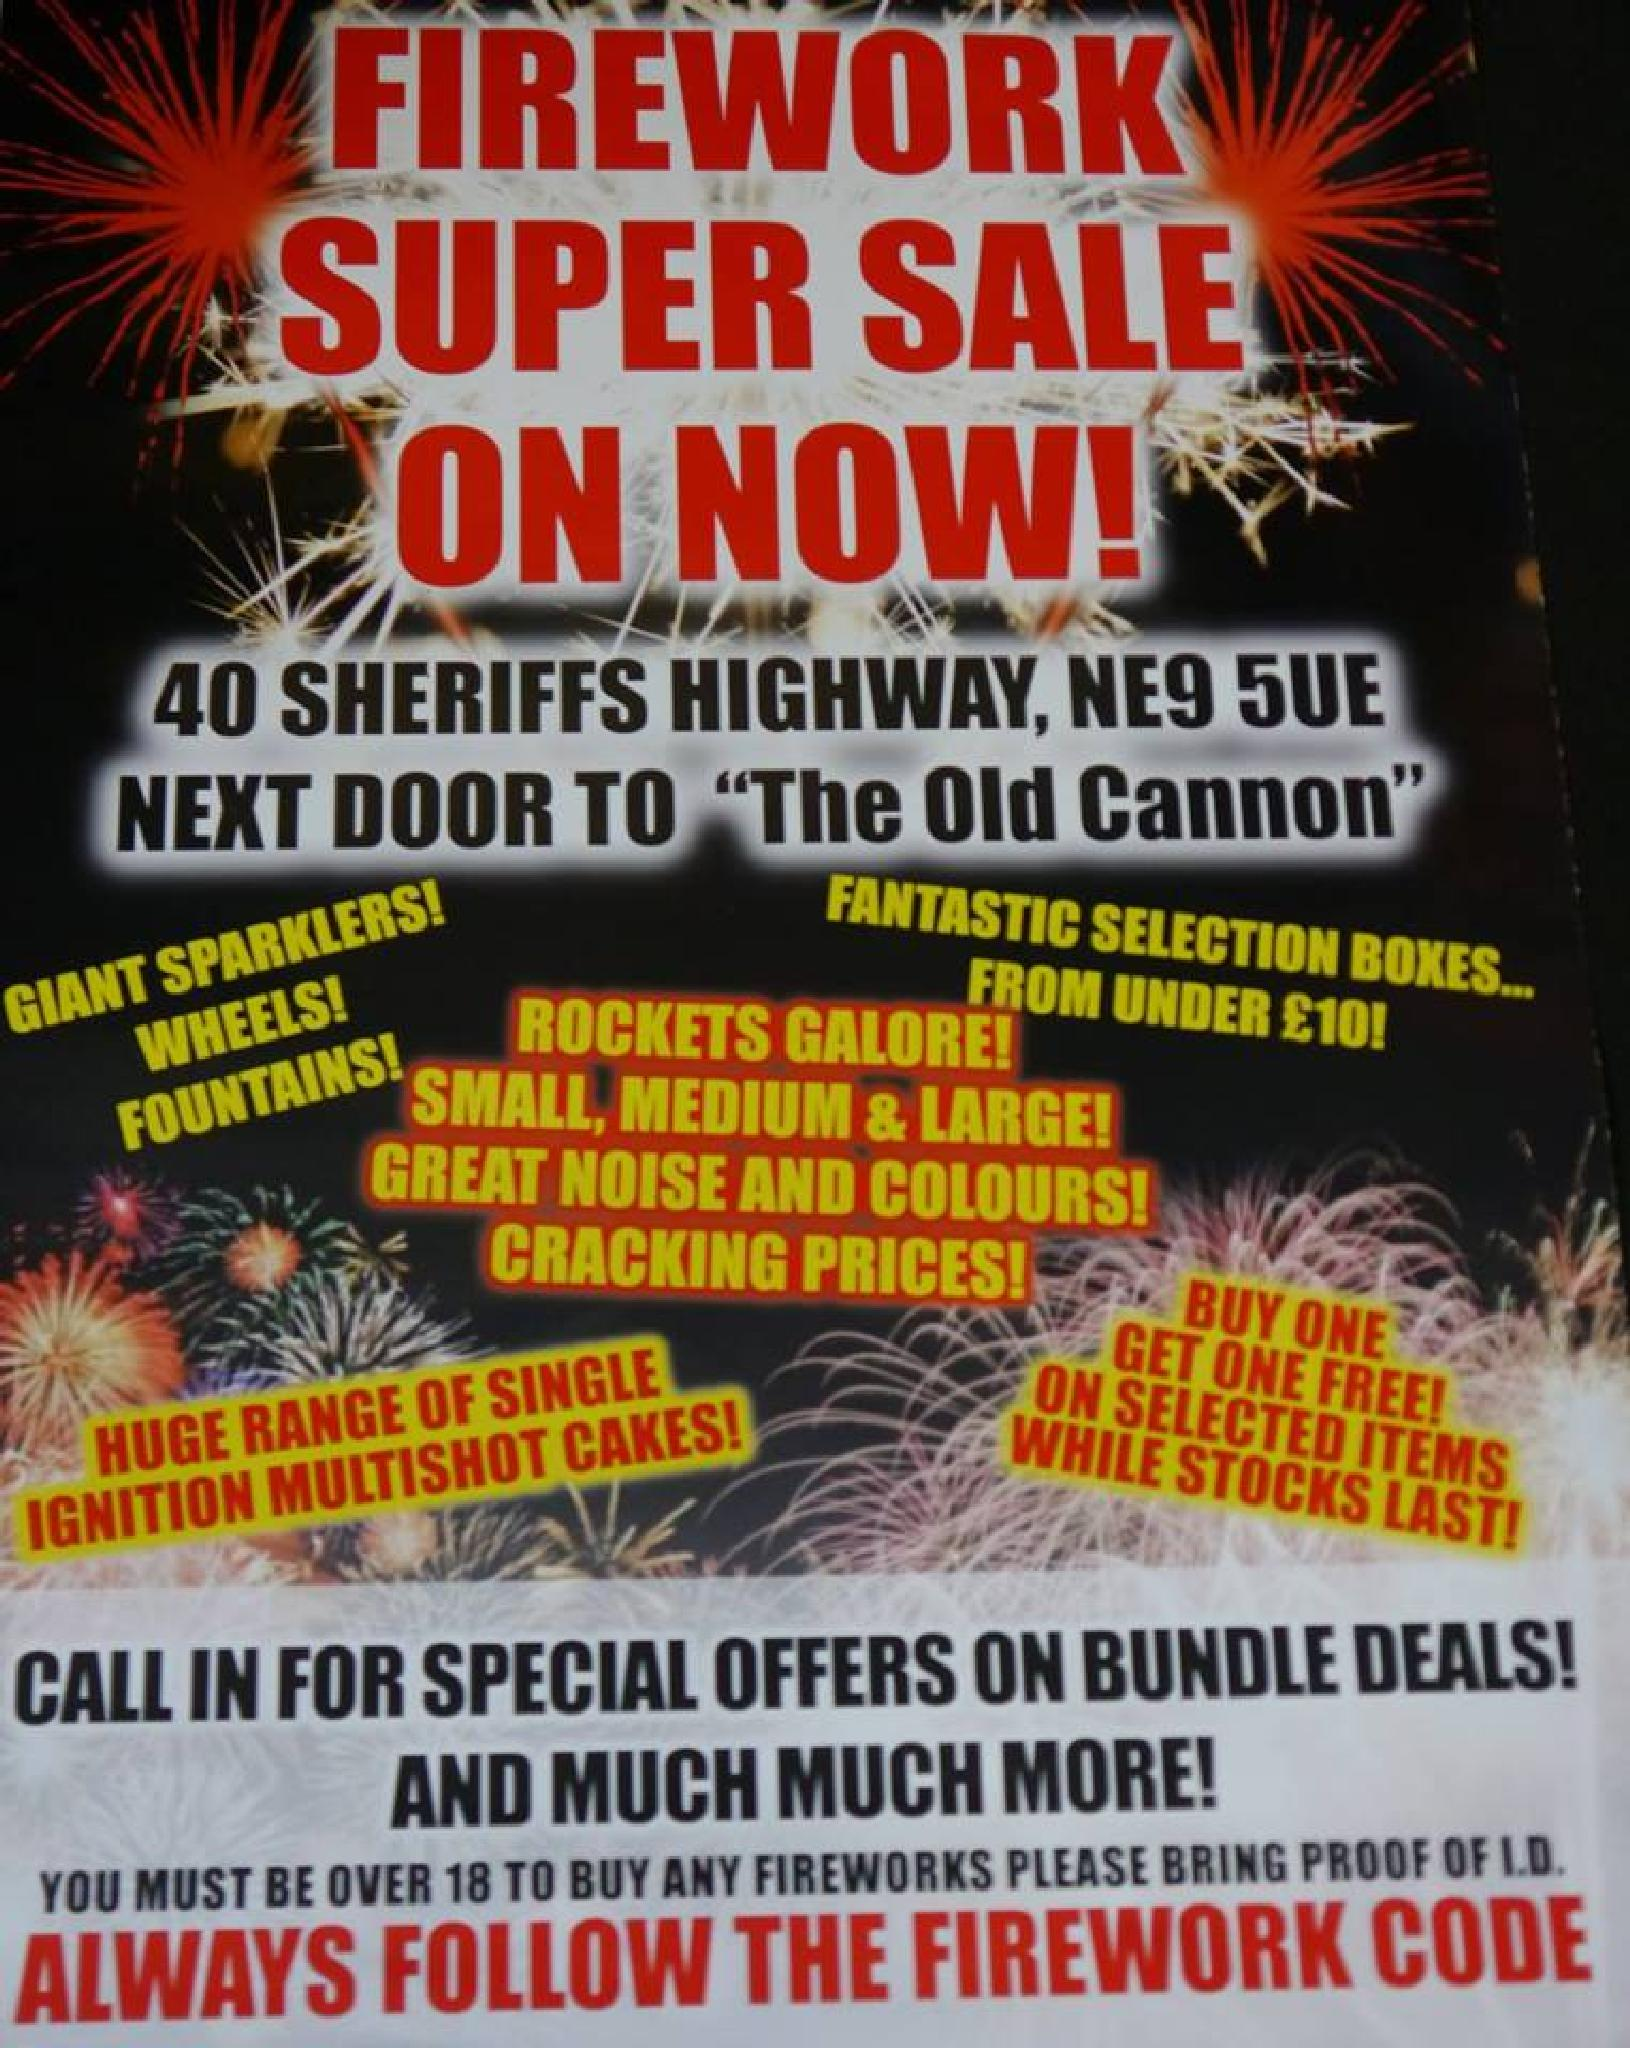 Quality Fireworks and amazing deals well worth a visit........ by Darren Turner